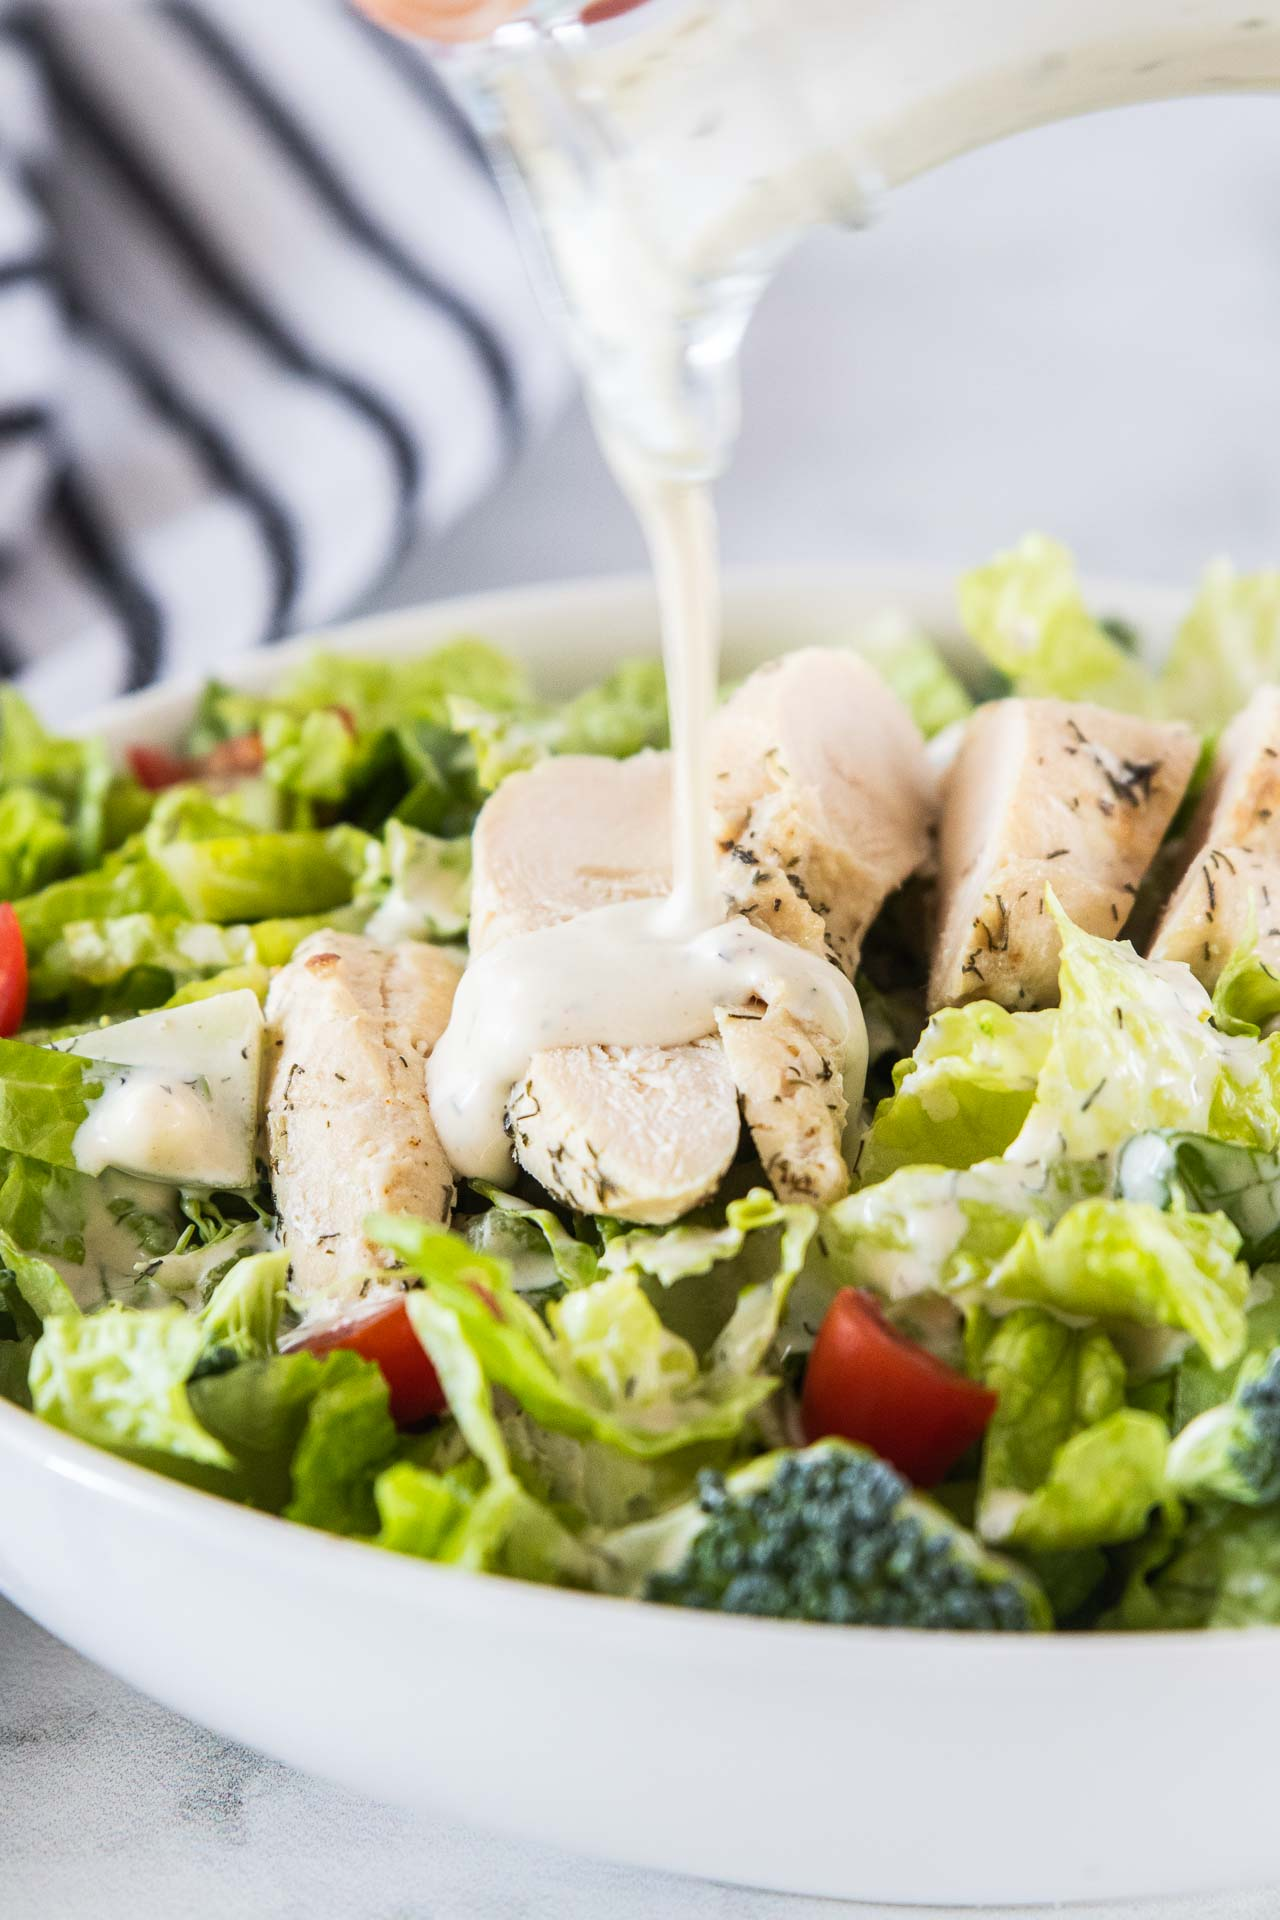 Keto ranch dressing drizzled on a salad.